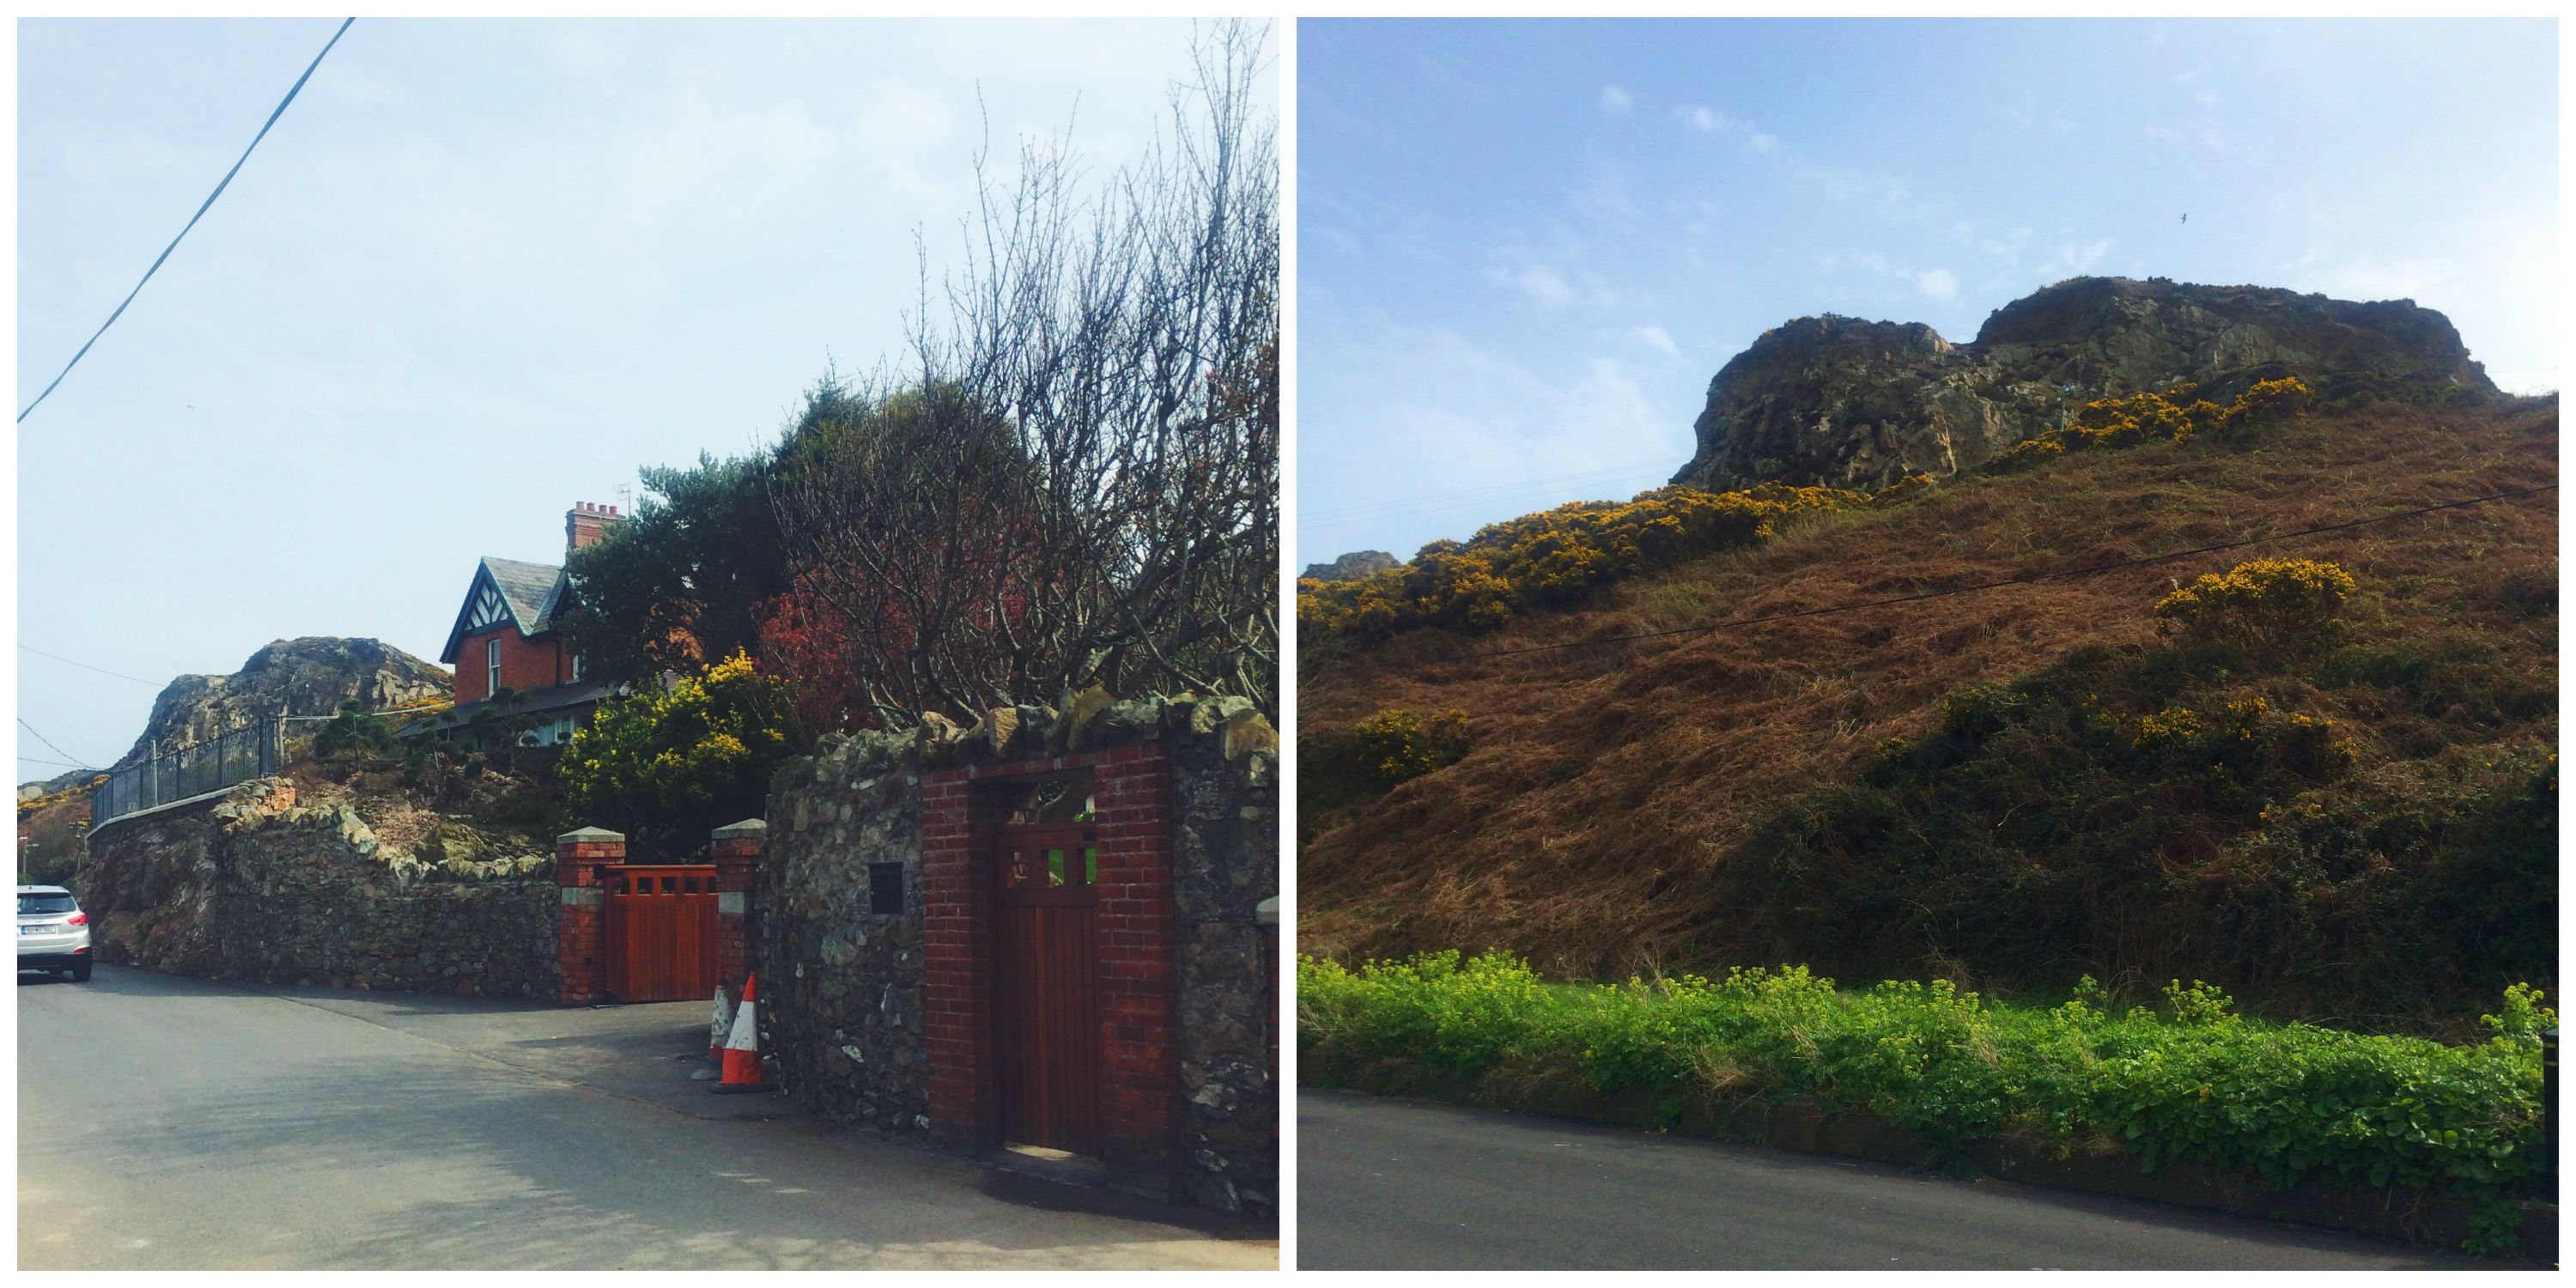 Houses in Howth